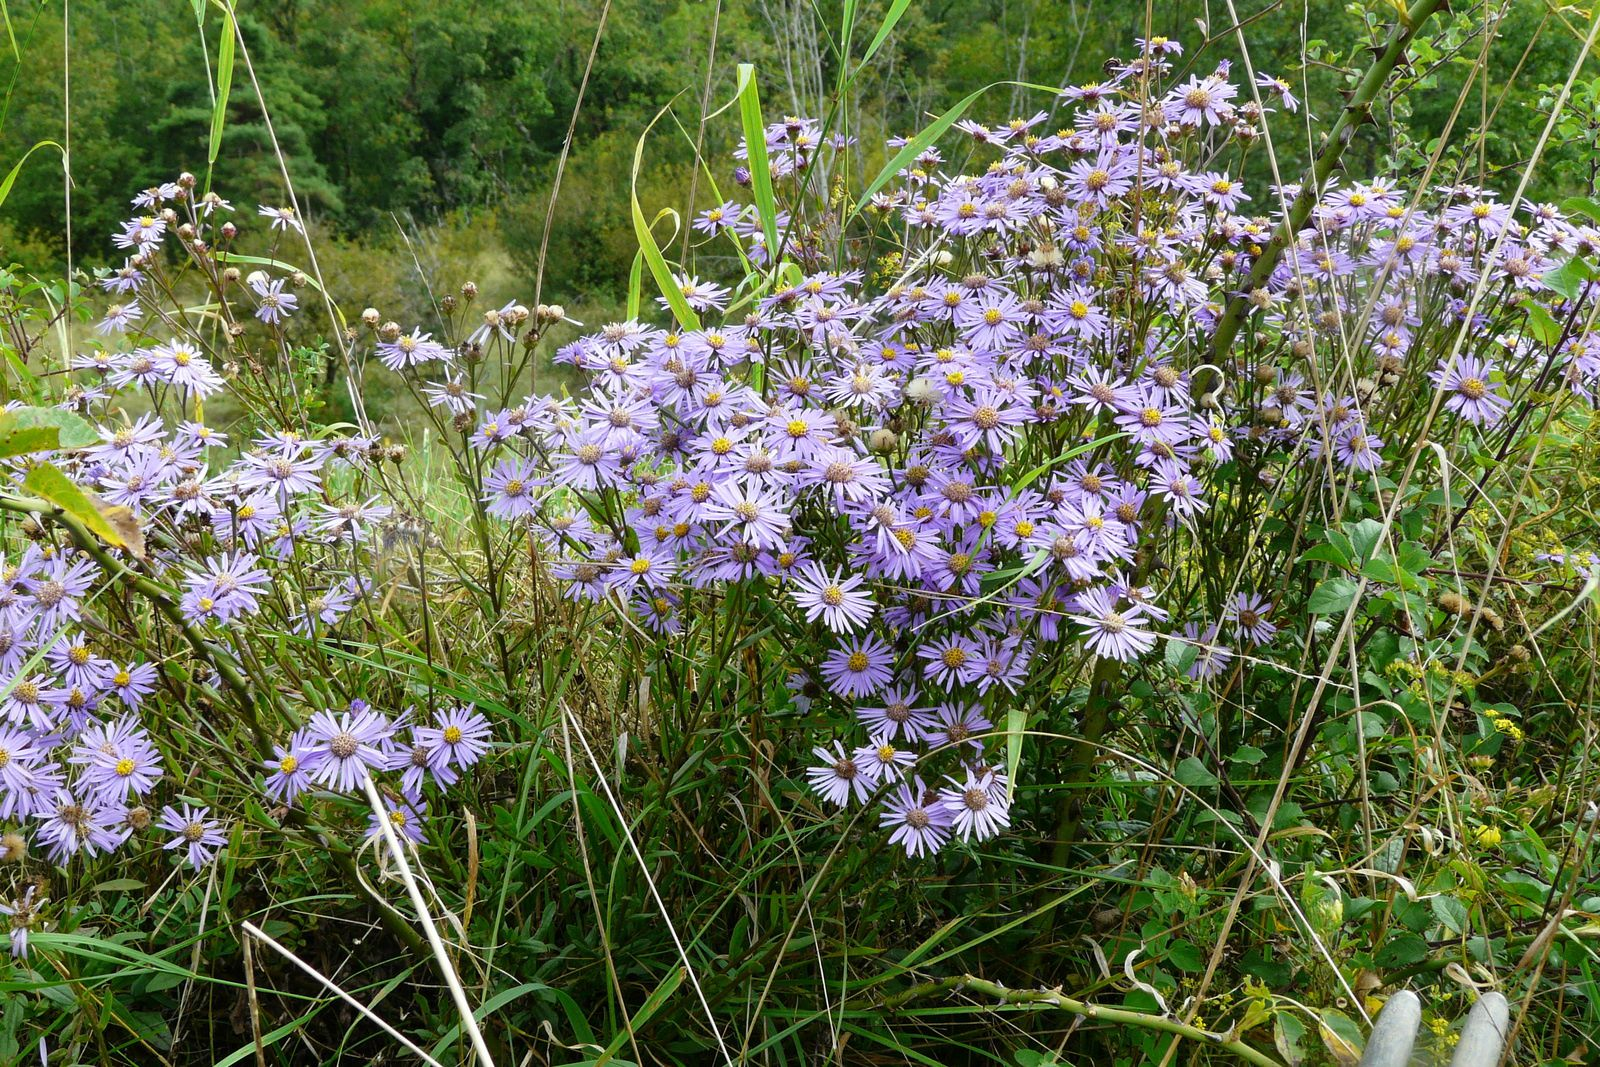 Aster amellus L. aster amelle